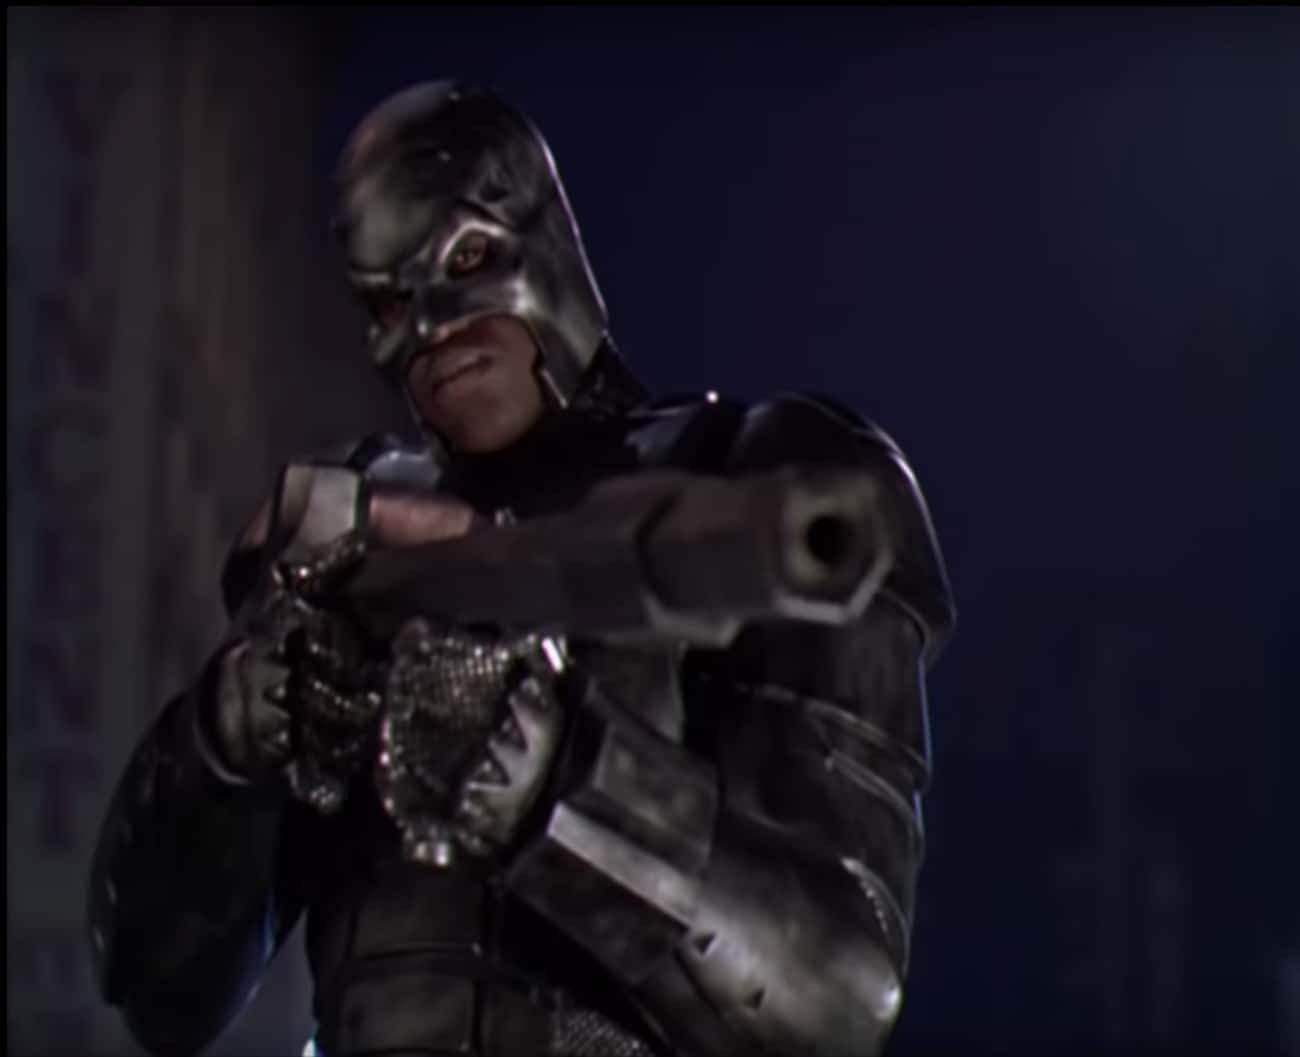 Shaquille O'Neal In 'Steel' is listed (or ranked) 1 on the list The Worst Superhero Performances In Comic Book Movies